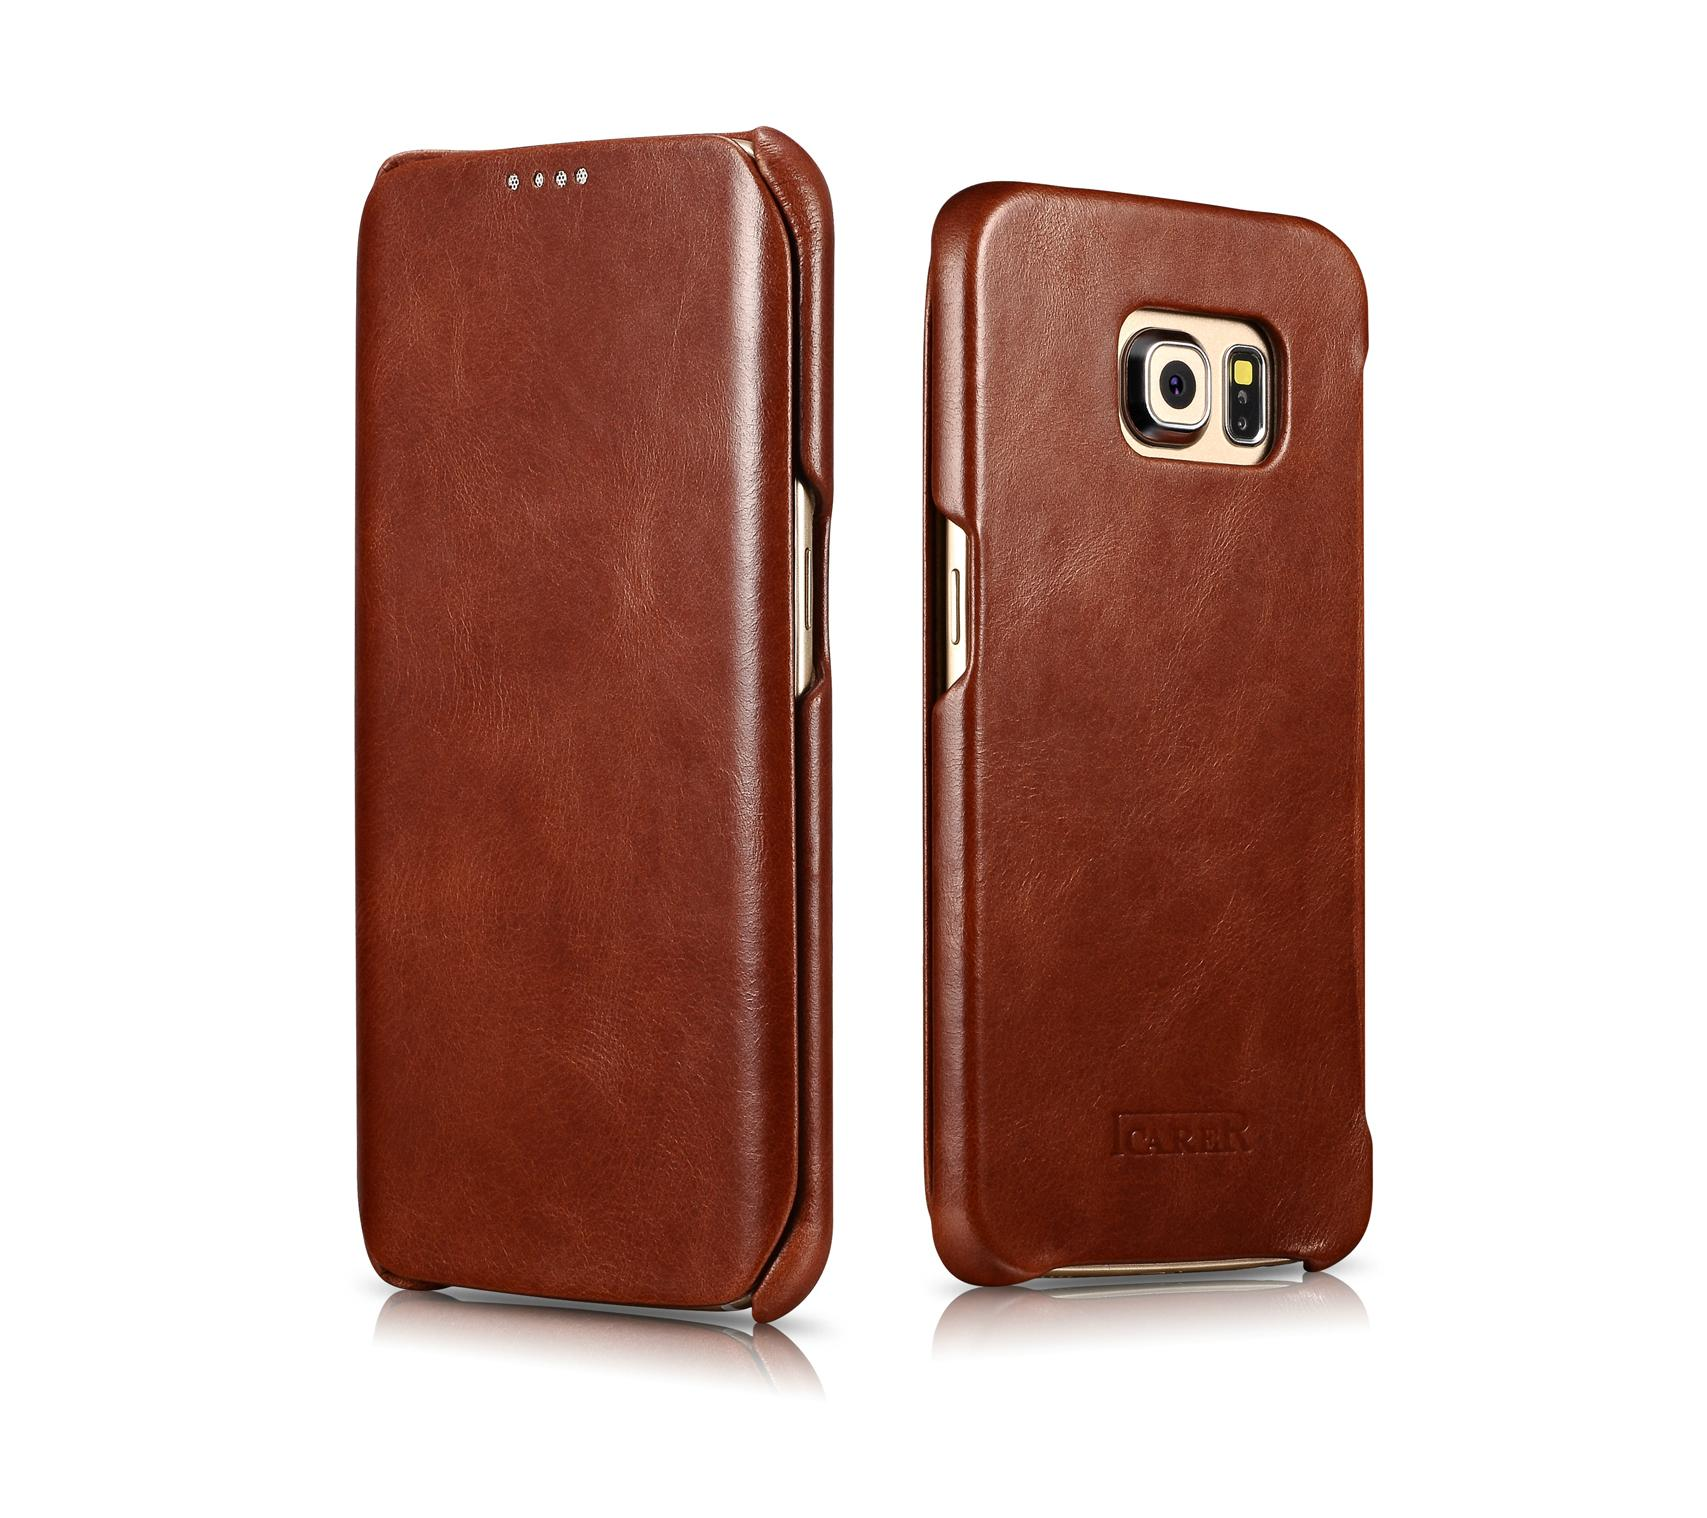 iCarer Samsung Galaxy S6 Edge Side Open Vintage Series Genuine Leather Case 16